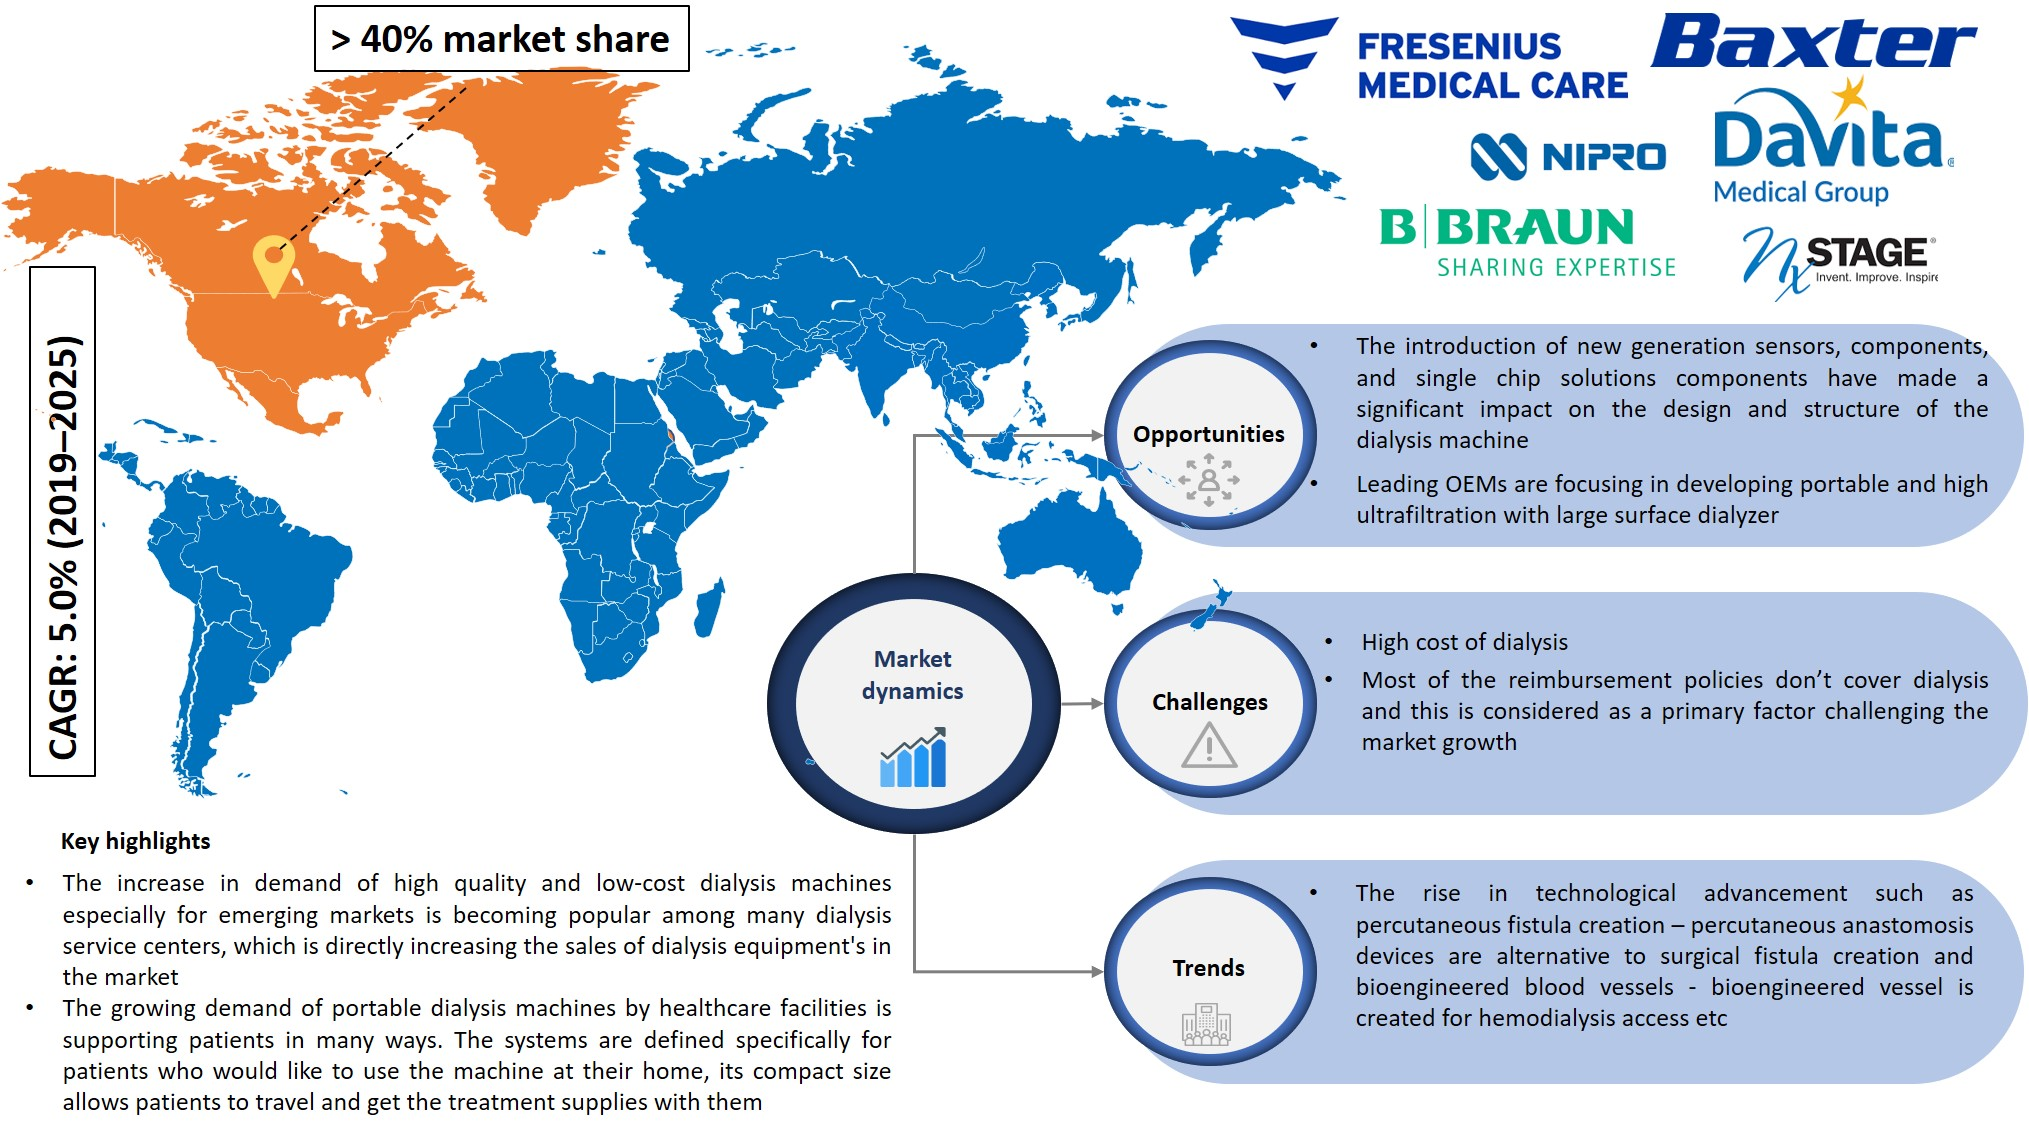 dialysis market share